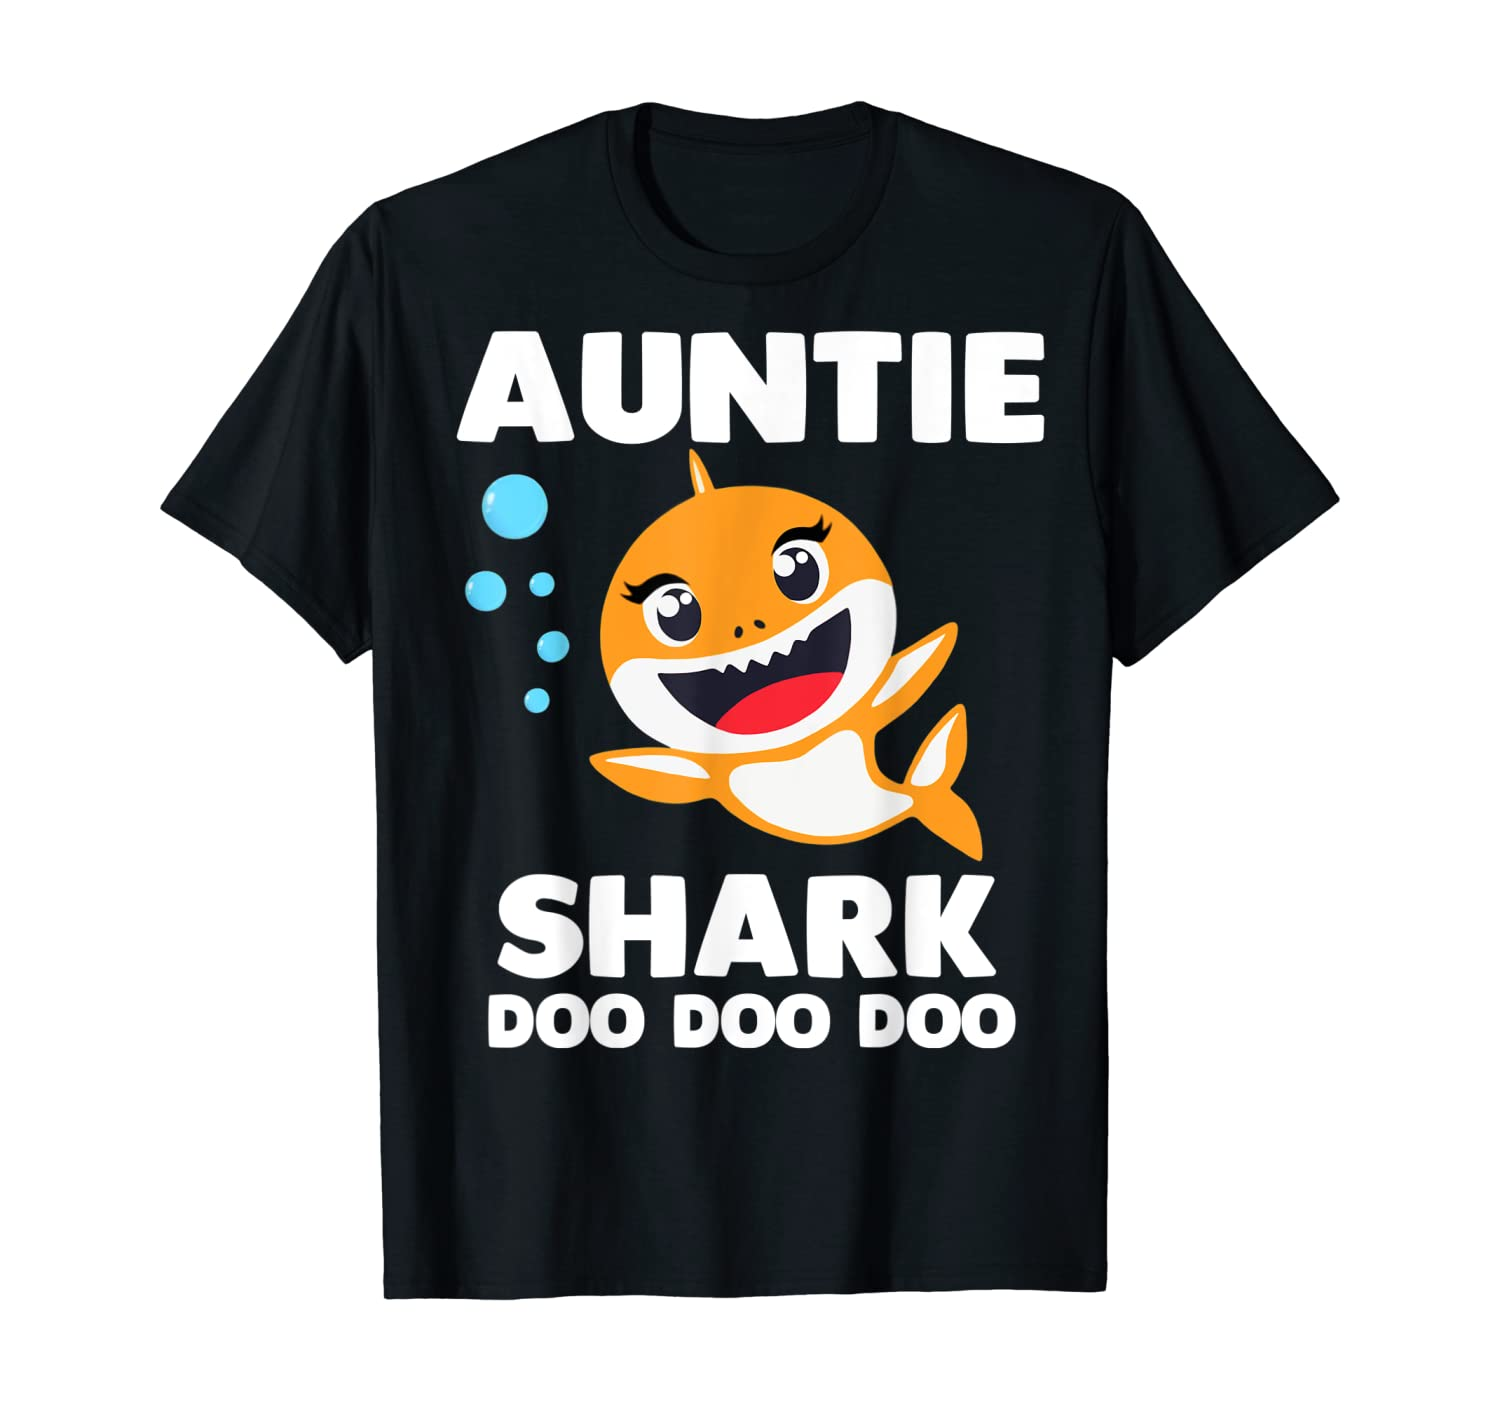 Auntie Shark Shirt Doo Doo Uncle Mommy Daddy Aunt T-Shirt